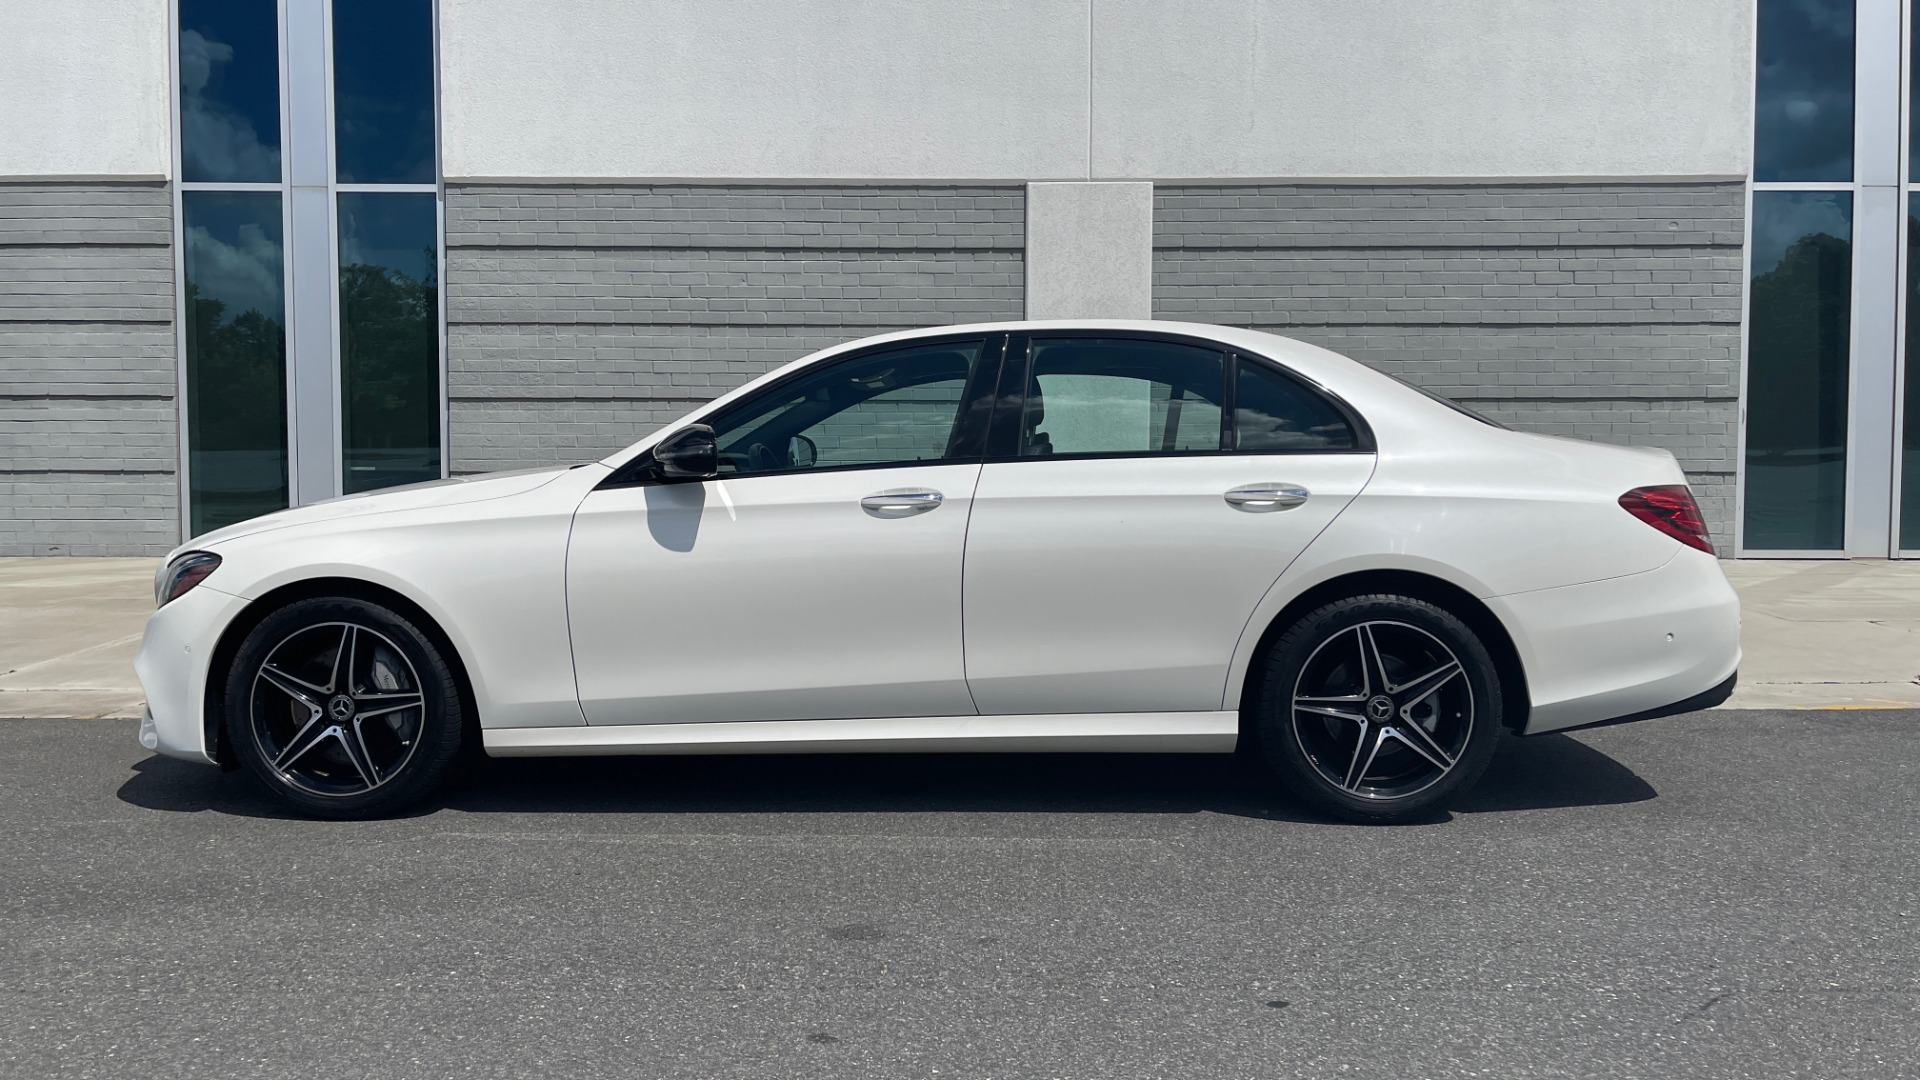 Used 2018 Mercedes-Benz E-CLASS E 300 PREMIUM / NIGHT PKG / PANO-ROOF / BURMESTER / REARVIEW for sale $42,399 at Formula Imports in Charlotte NC 28227 4